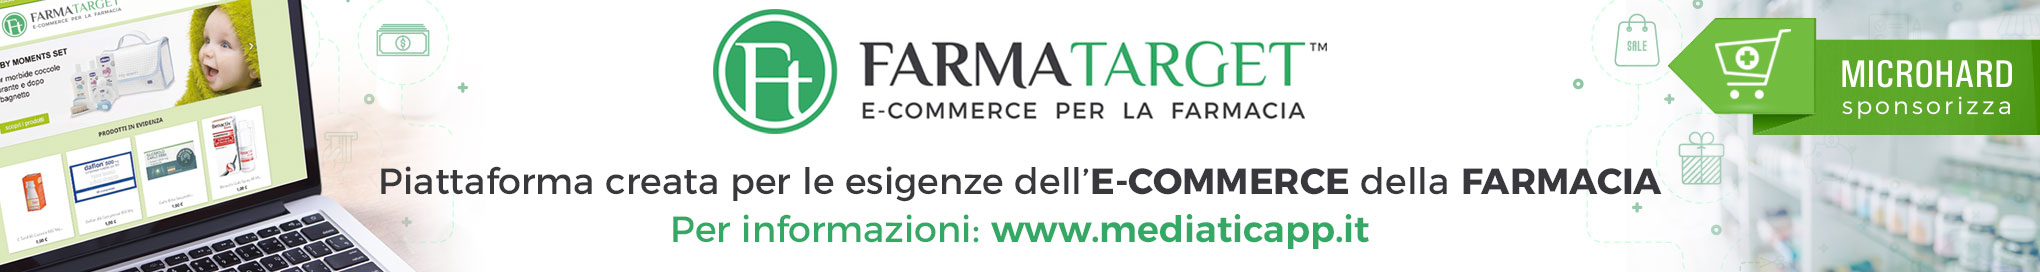 farmatarget ecommerce farmacia